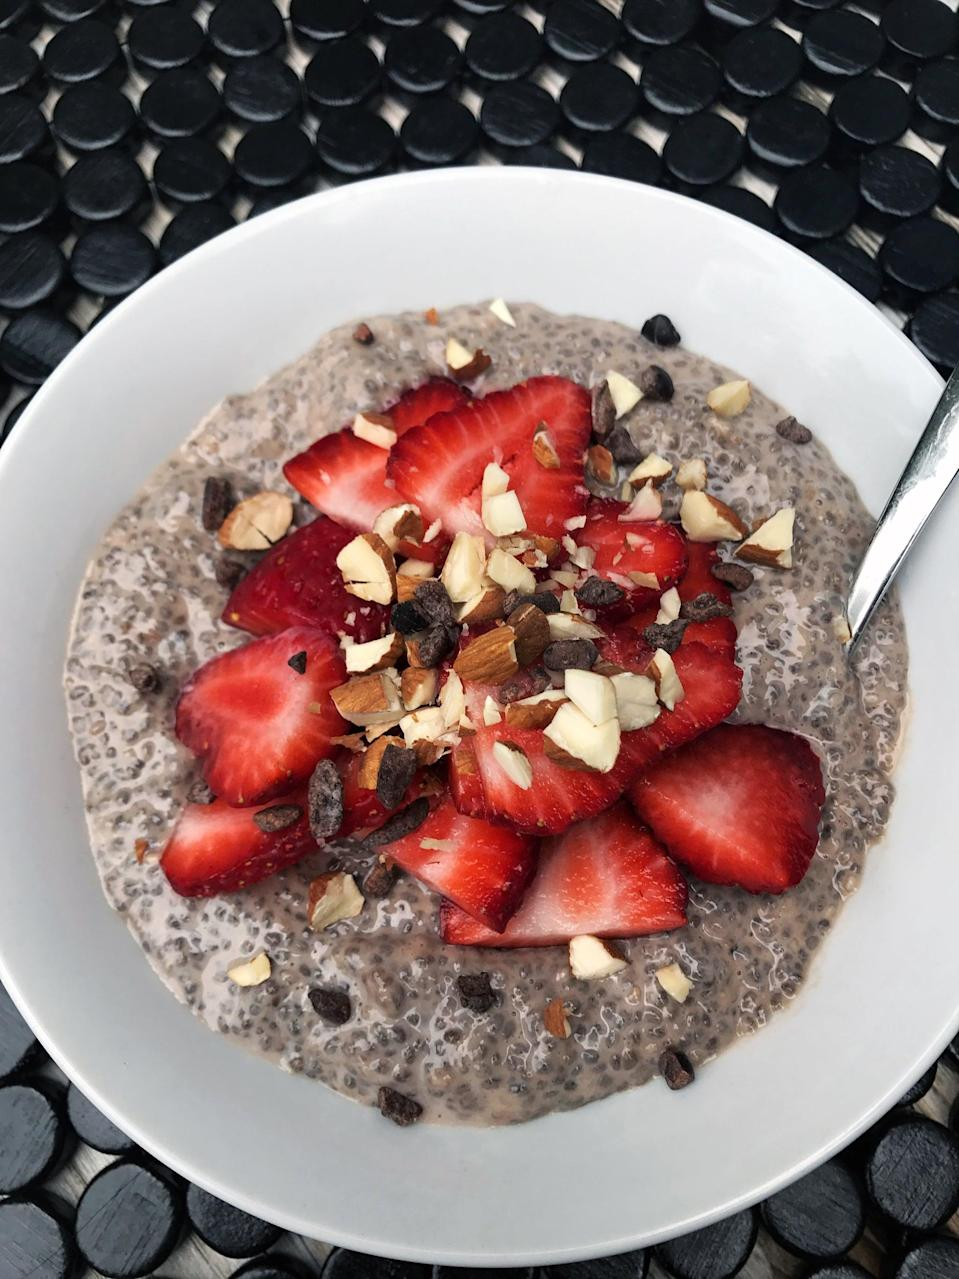 """<p>With this recipe for chocolate chia protein pudding, you can get your chocolate fix and still get a ton of protein - over 20 grams.</p> <p><strong>Get the recipe:</strong> <a href=""""https://www.popsugar.com/fitness/Chia-Pudding-Weight-Loss-43989523"""" class=""""link rapid-noclick-resp"""" rel=""""nofollow noopener"""" target=""""_blank"""" data-ylk=""""slk:chocolate protein chia pudding"""">chocolate protein chia pudding</a></p>"""